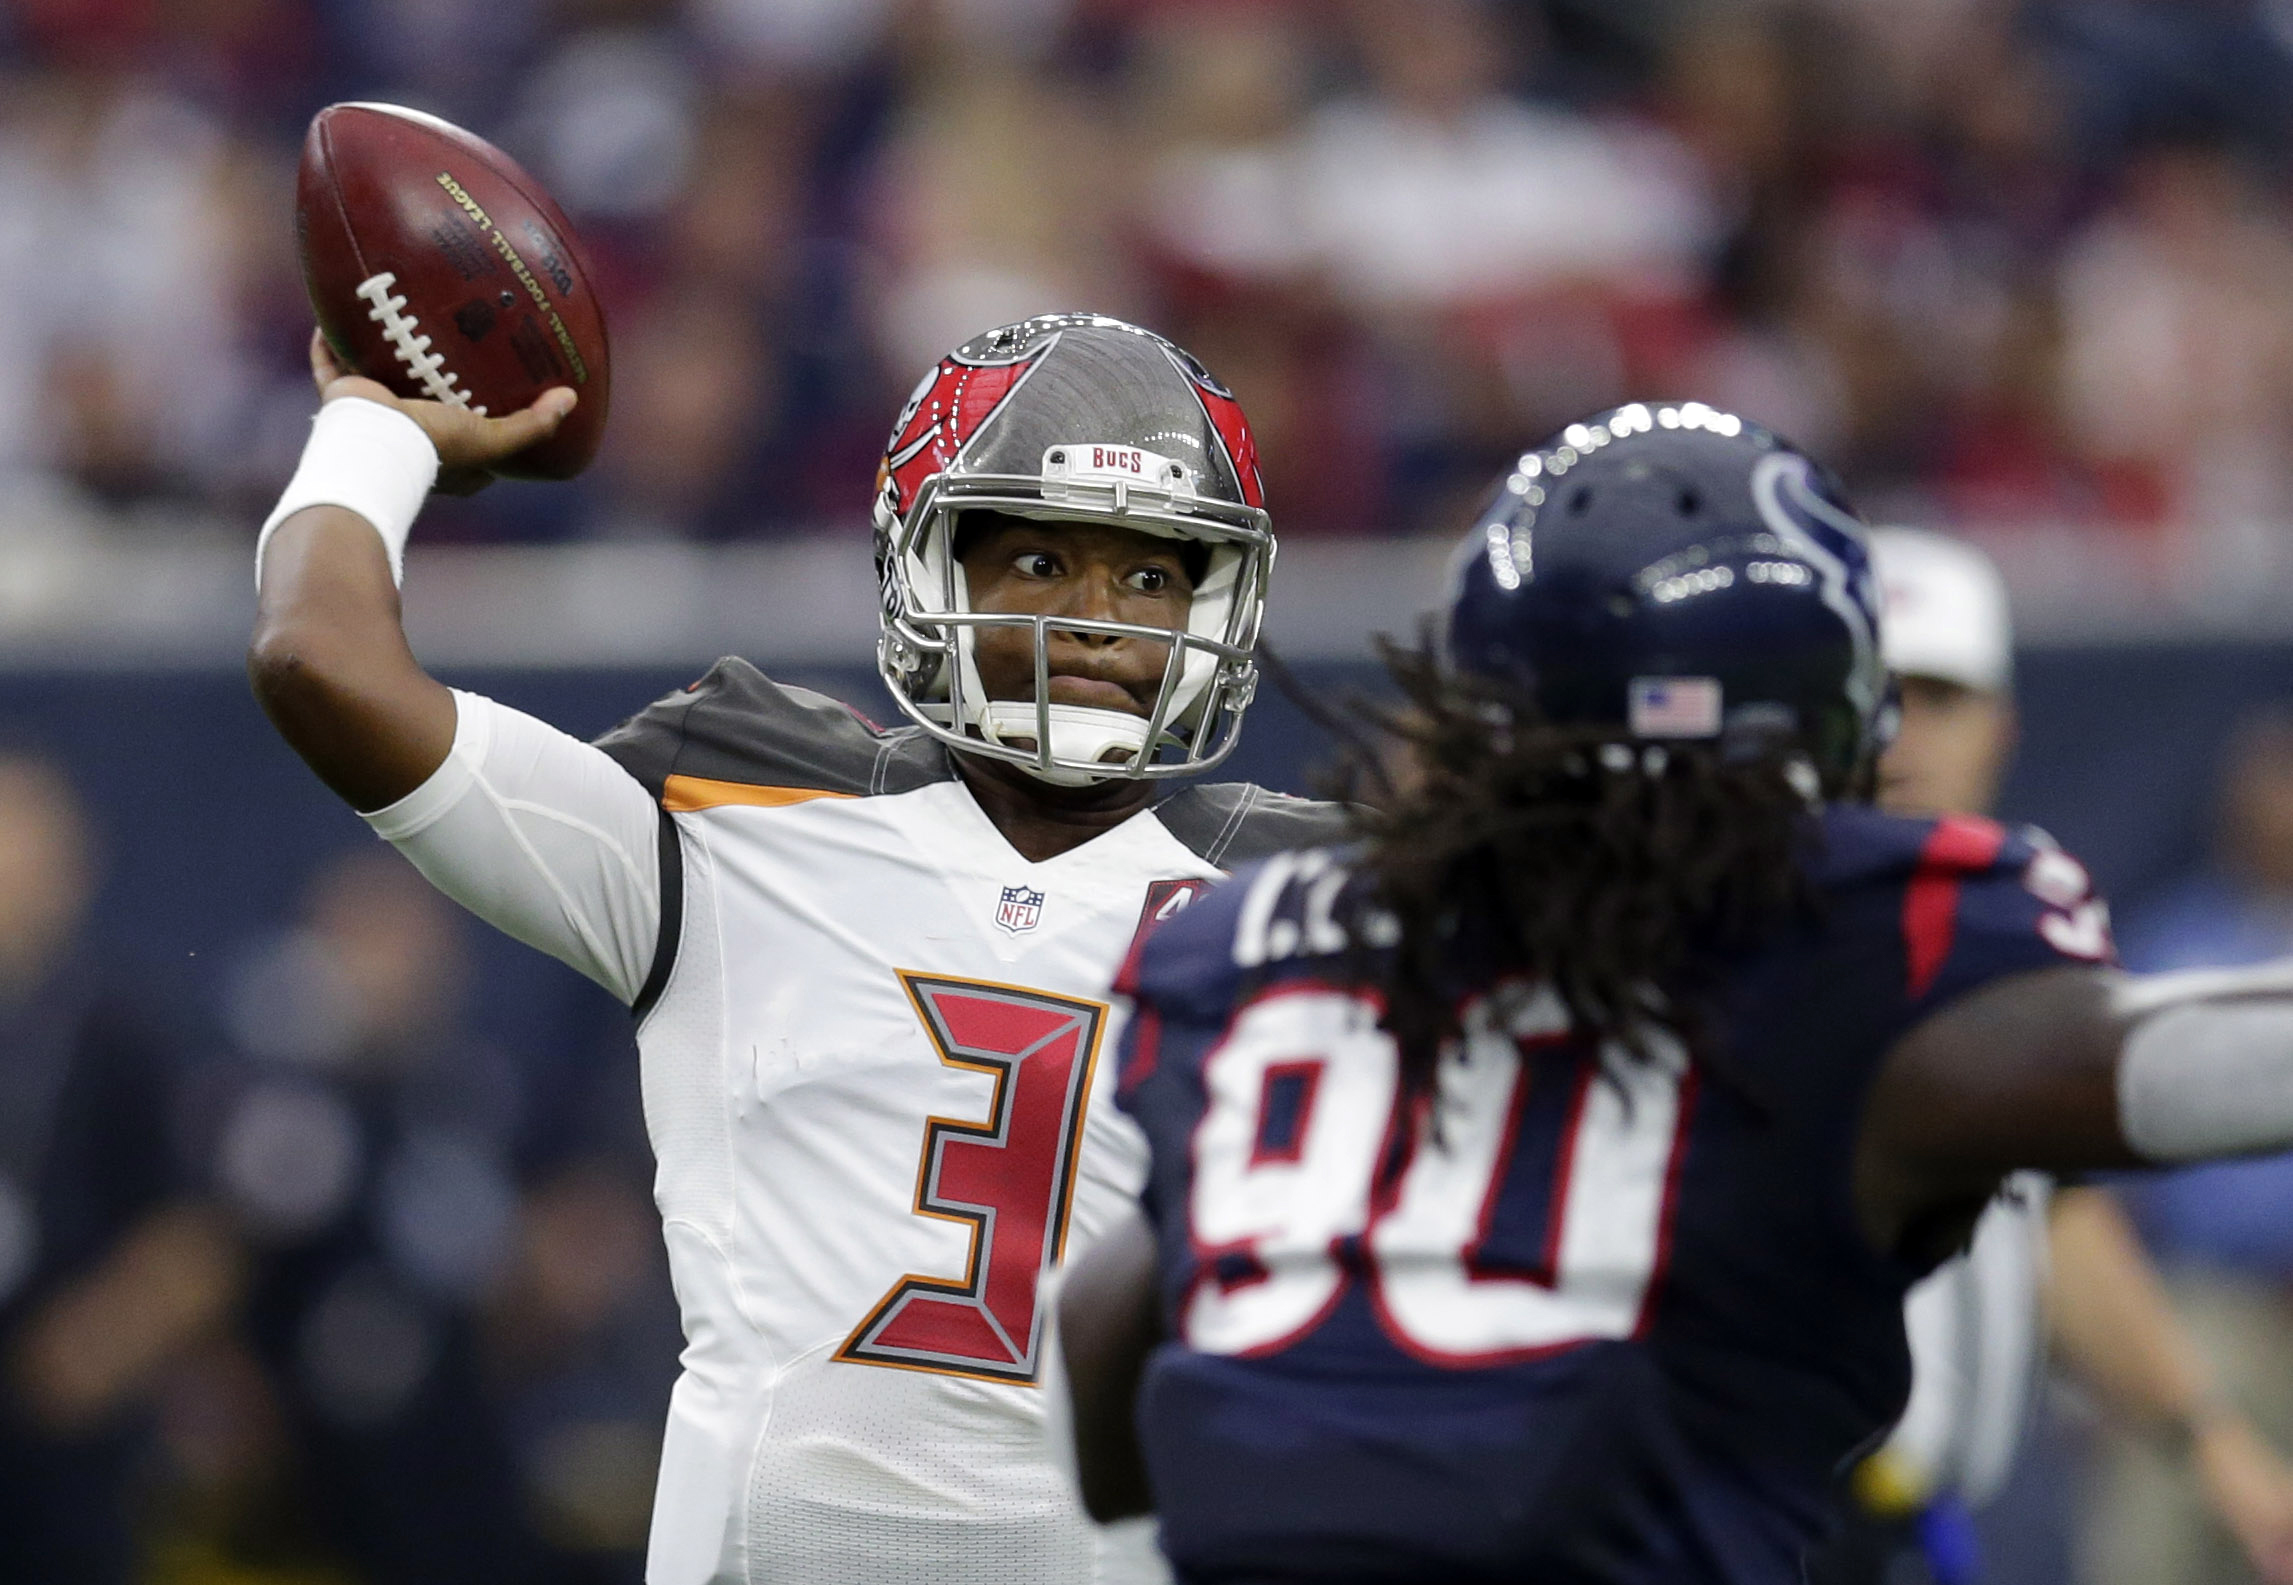 Tampa Bay Buccaneers' Jameis Winston (3) throws as Houston Texans' Jadeveon Clowney (90) applies pressure during the first half of an NFL football game Sunday, Sept. 27, 2015, in Houston. (AP Photo/David J. Phillip)